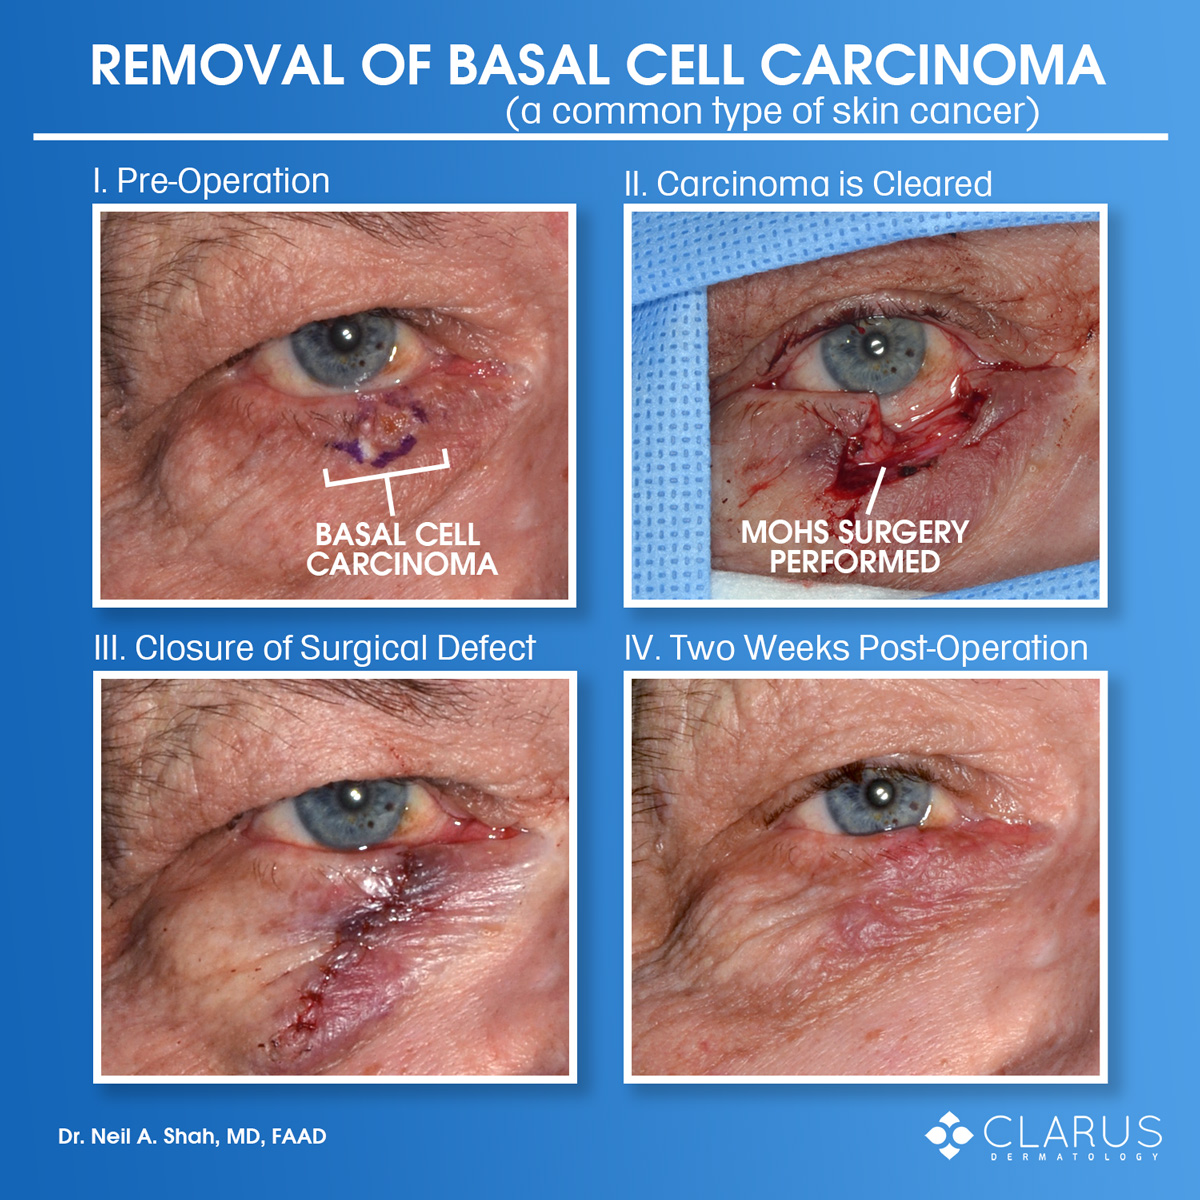 These were taken of a patient that had basal cell carcinoma, a common type of skin cancer, on their eyelid. Dr. Neil Shah performed Mohs surgery at Clarus Dermatology to remove the cancer. The surgical defect was then immediately repaired.